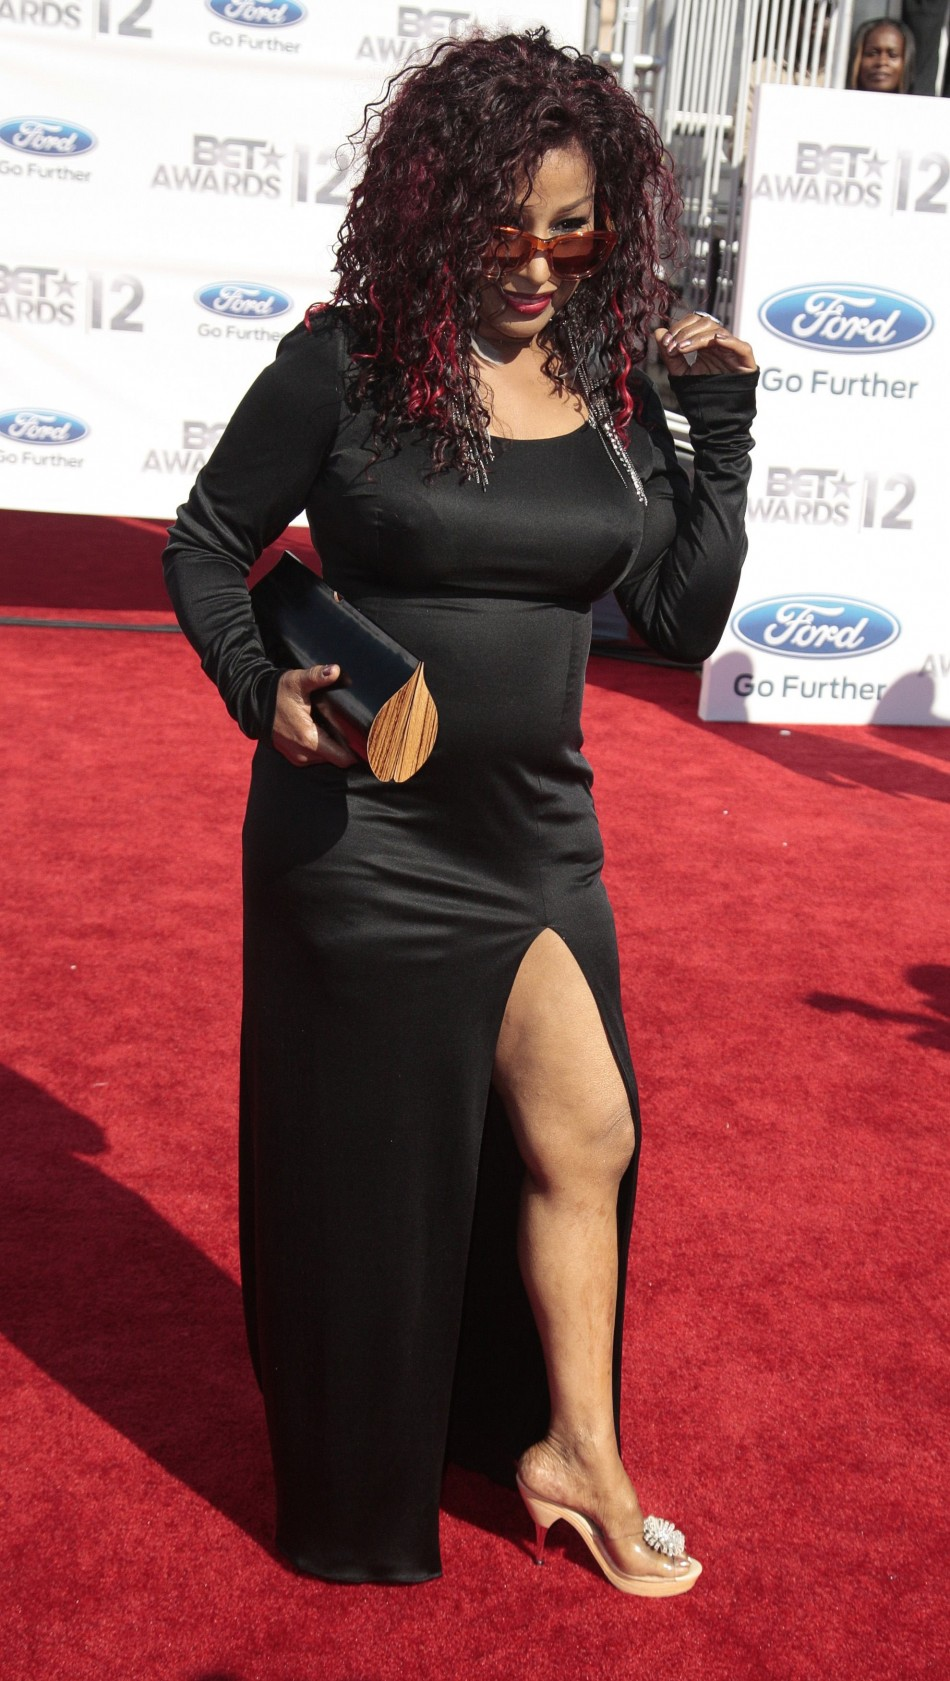 Chaka Kahn poses at the 2012 BET Awards in Los Angeles